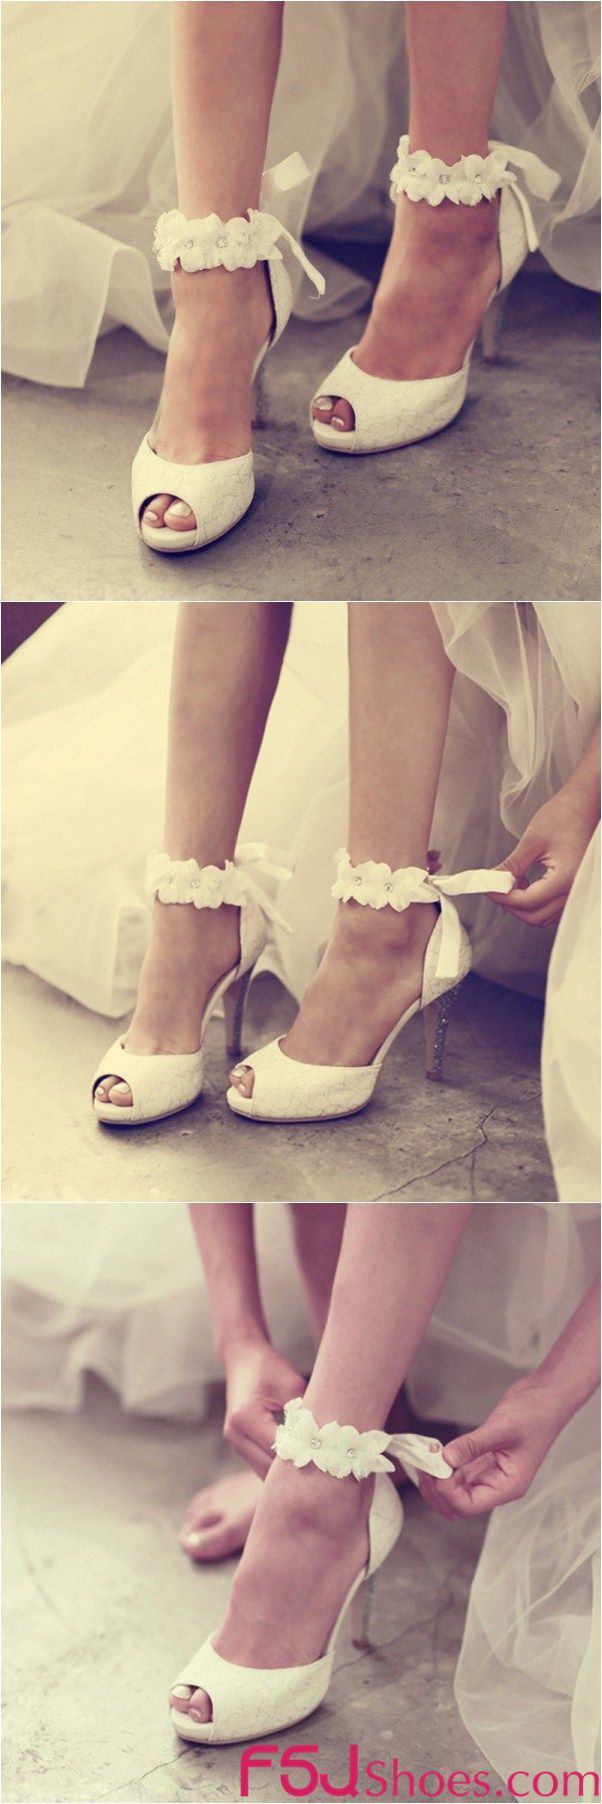 Women's Wedding Shoes Fall Fashion 2017 Fall Outfits Women White Lace Peep Toe Stiletto Heels Flora Ankle Strap Wedding Sandals Fall Wedding Dresses Shoes Mermaid Wedding Dress Heels Edgy Wedding Dresses Shoes Thanksgiving Outfit 2017| FSJ